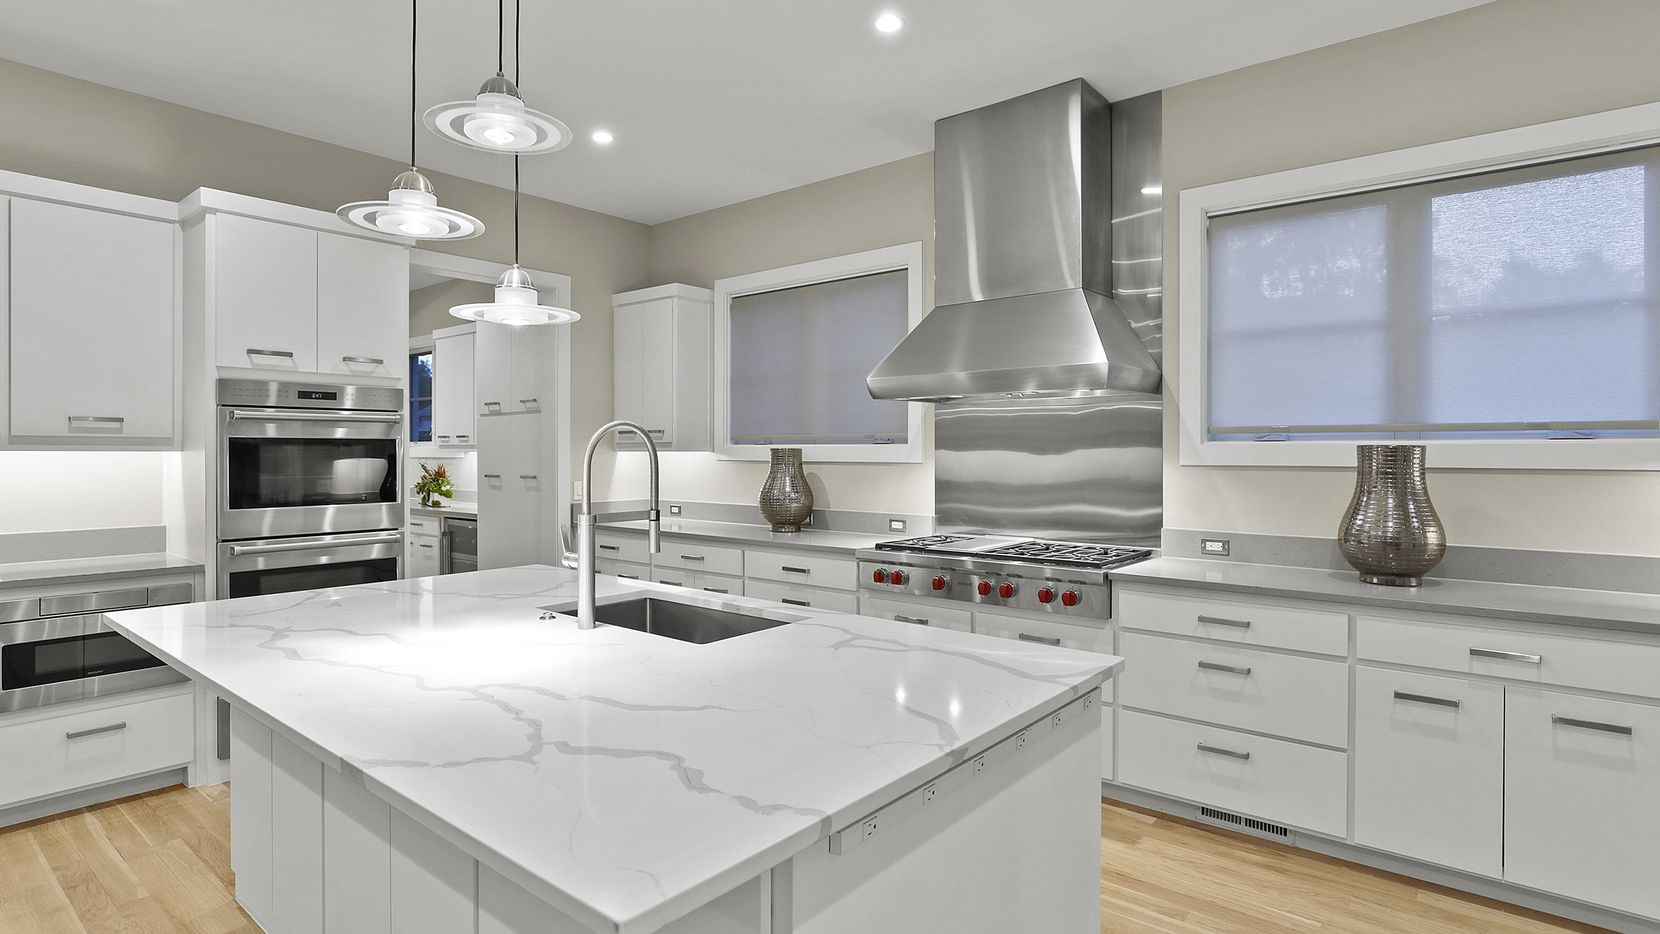 The newly constructed five-bedroom home at 4512 Mockingbird Lane in University Park includes a kitchen with stainless-steel appliances, white cabinetry and a large island.